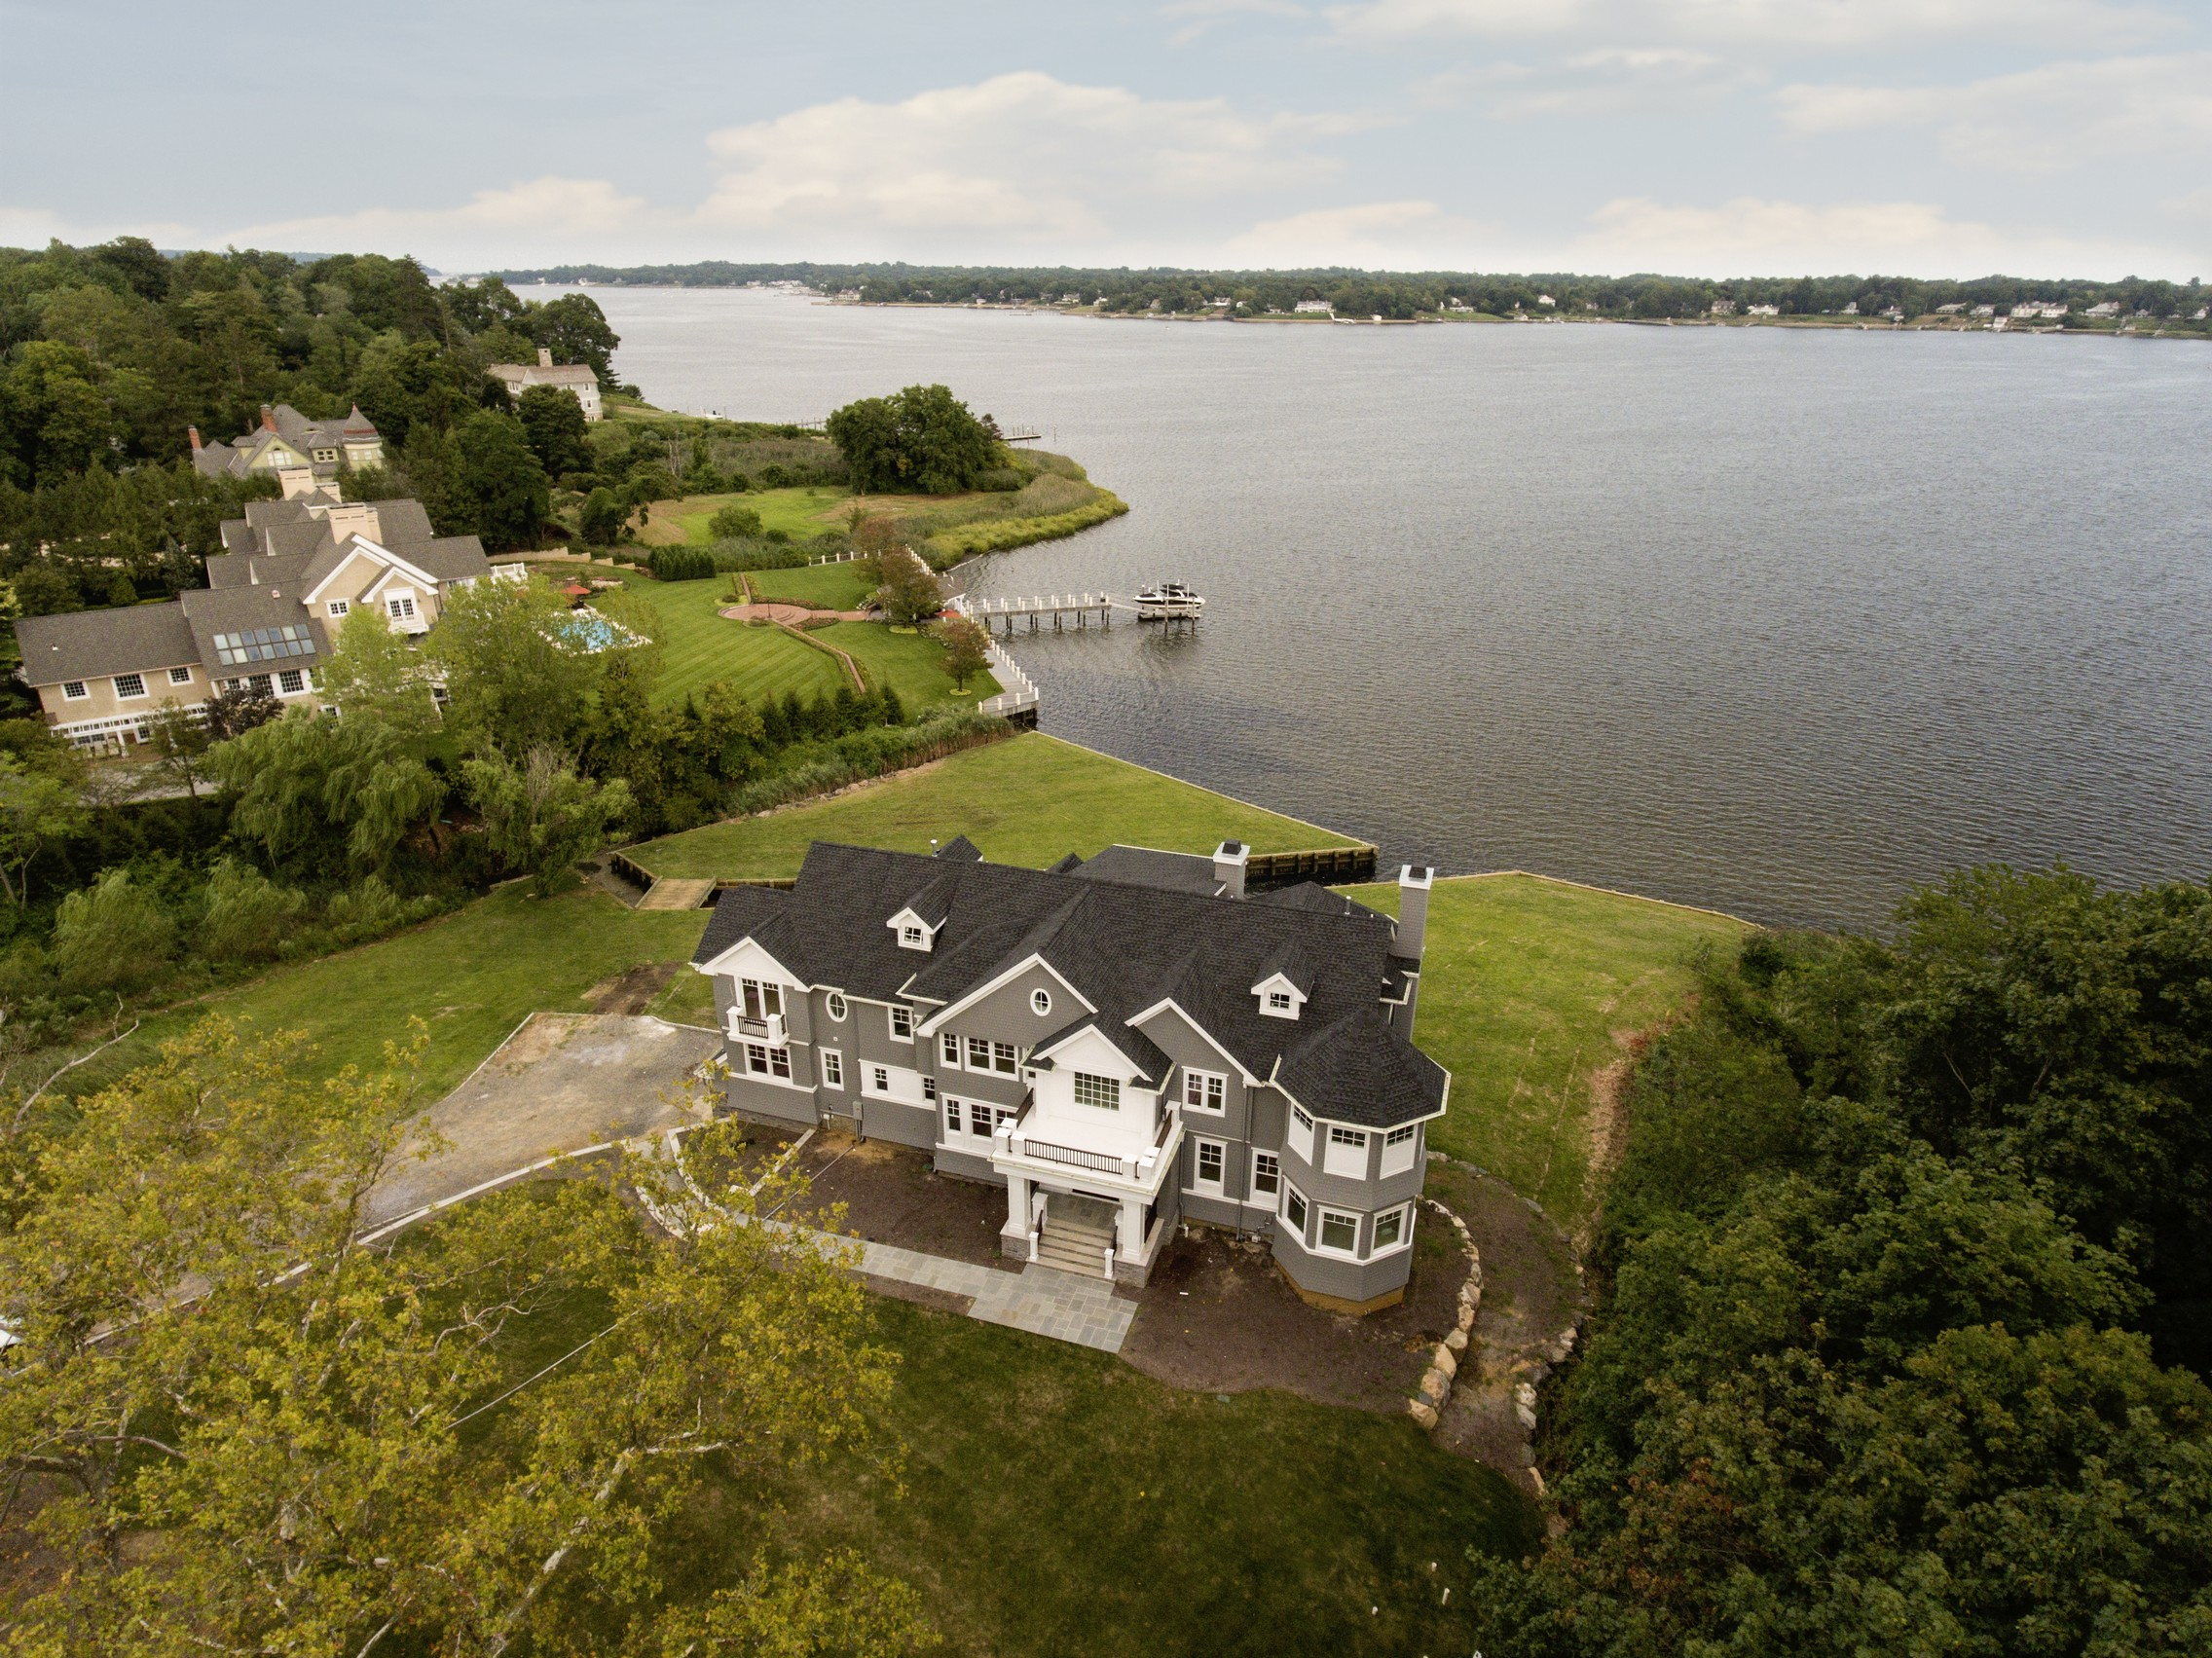 Single Family Home for Sale at Middletown NJ - Waterfront New Construction 444 Navesink River Rd. Middletown, 07748 United States